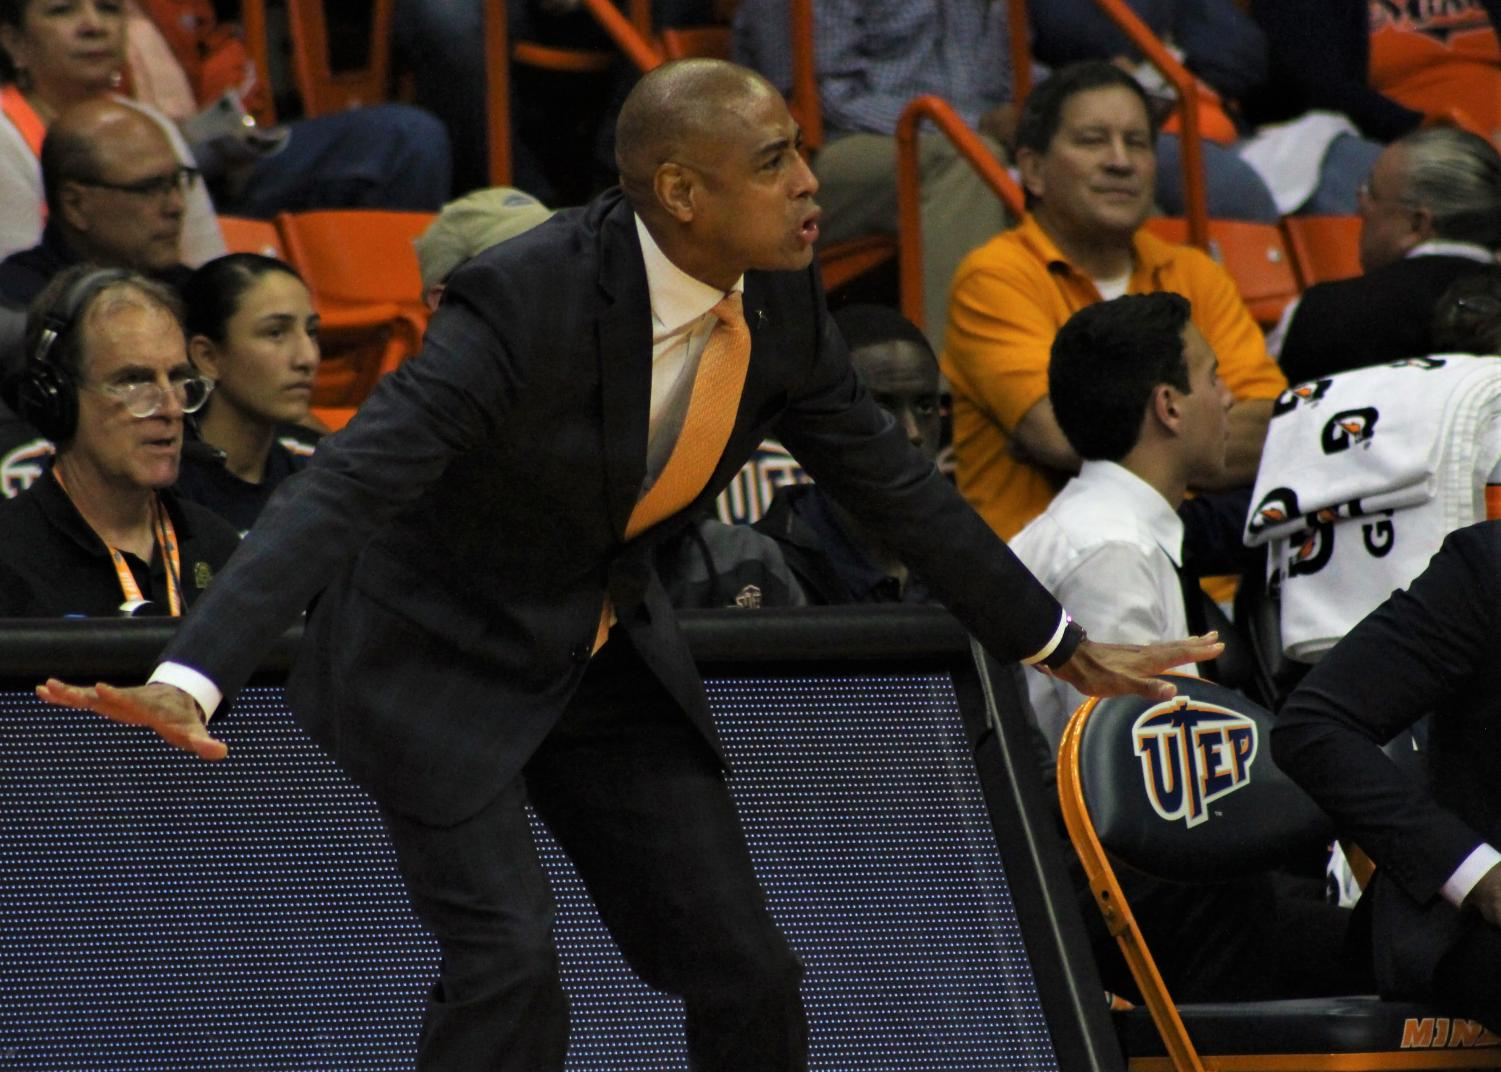 UTEP Miners men's basketball Coach Rodney Terry on his first game of the season against UTPB on Tuesday, Nov. 6.